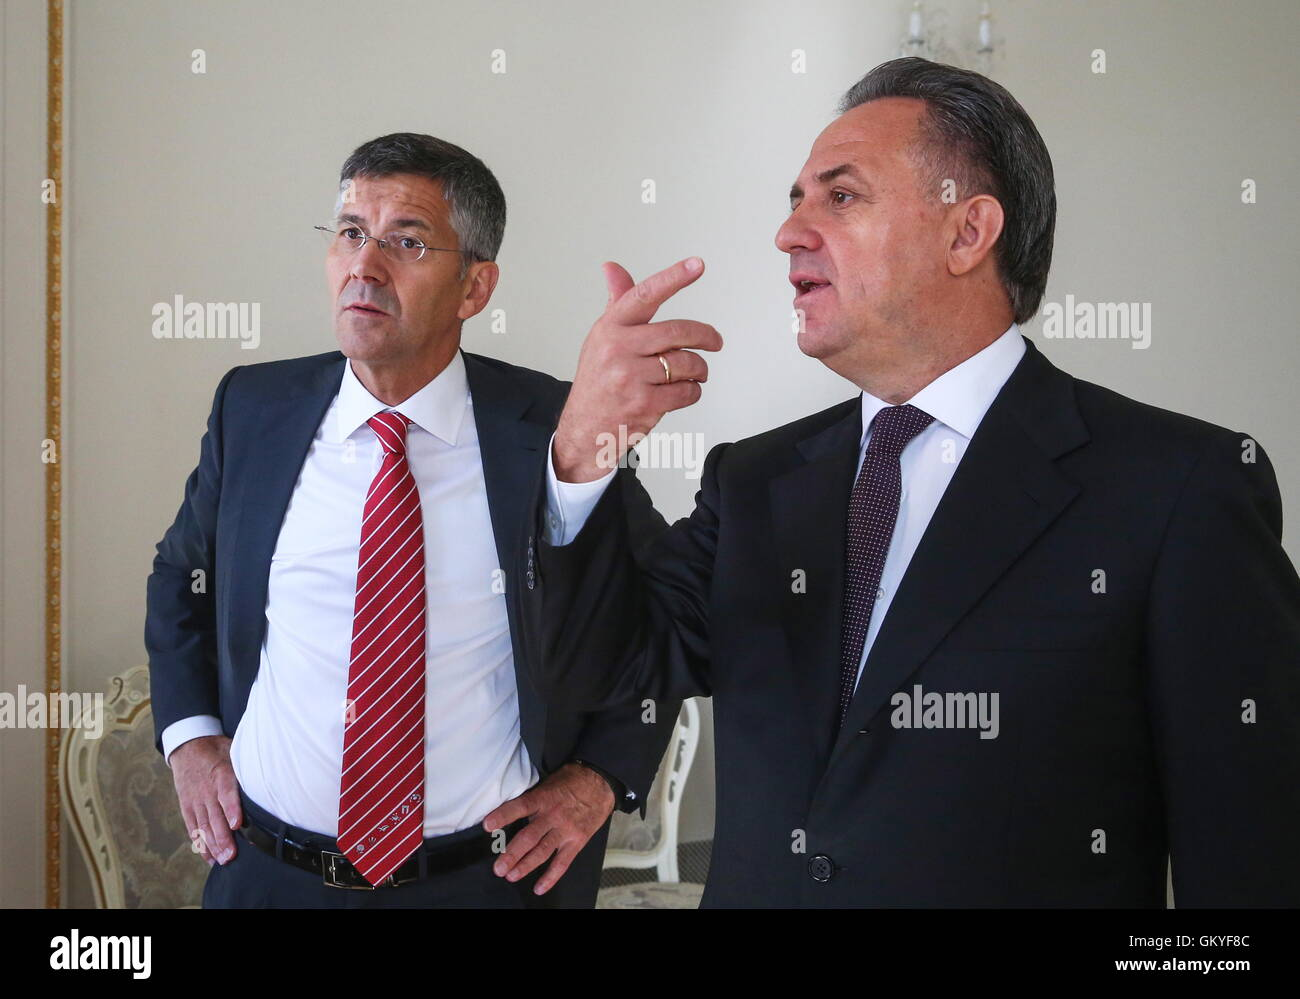 MOSCOW, RUSSIA – AUGUST 25, 2016: Adidas Group CEO Herbert Hainer (L) meets with Russian Sport Minister Vitaly Mutko. - Stock Image